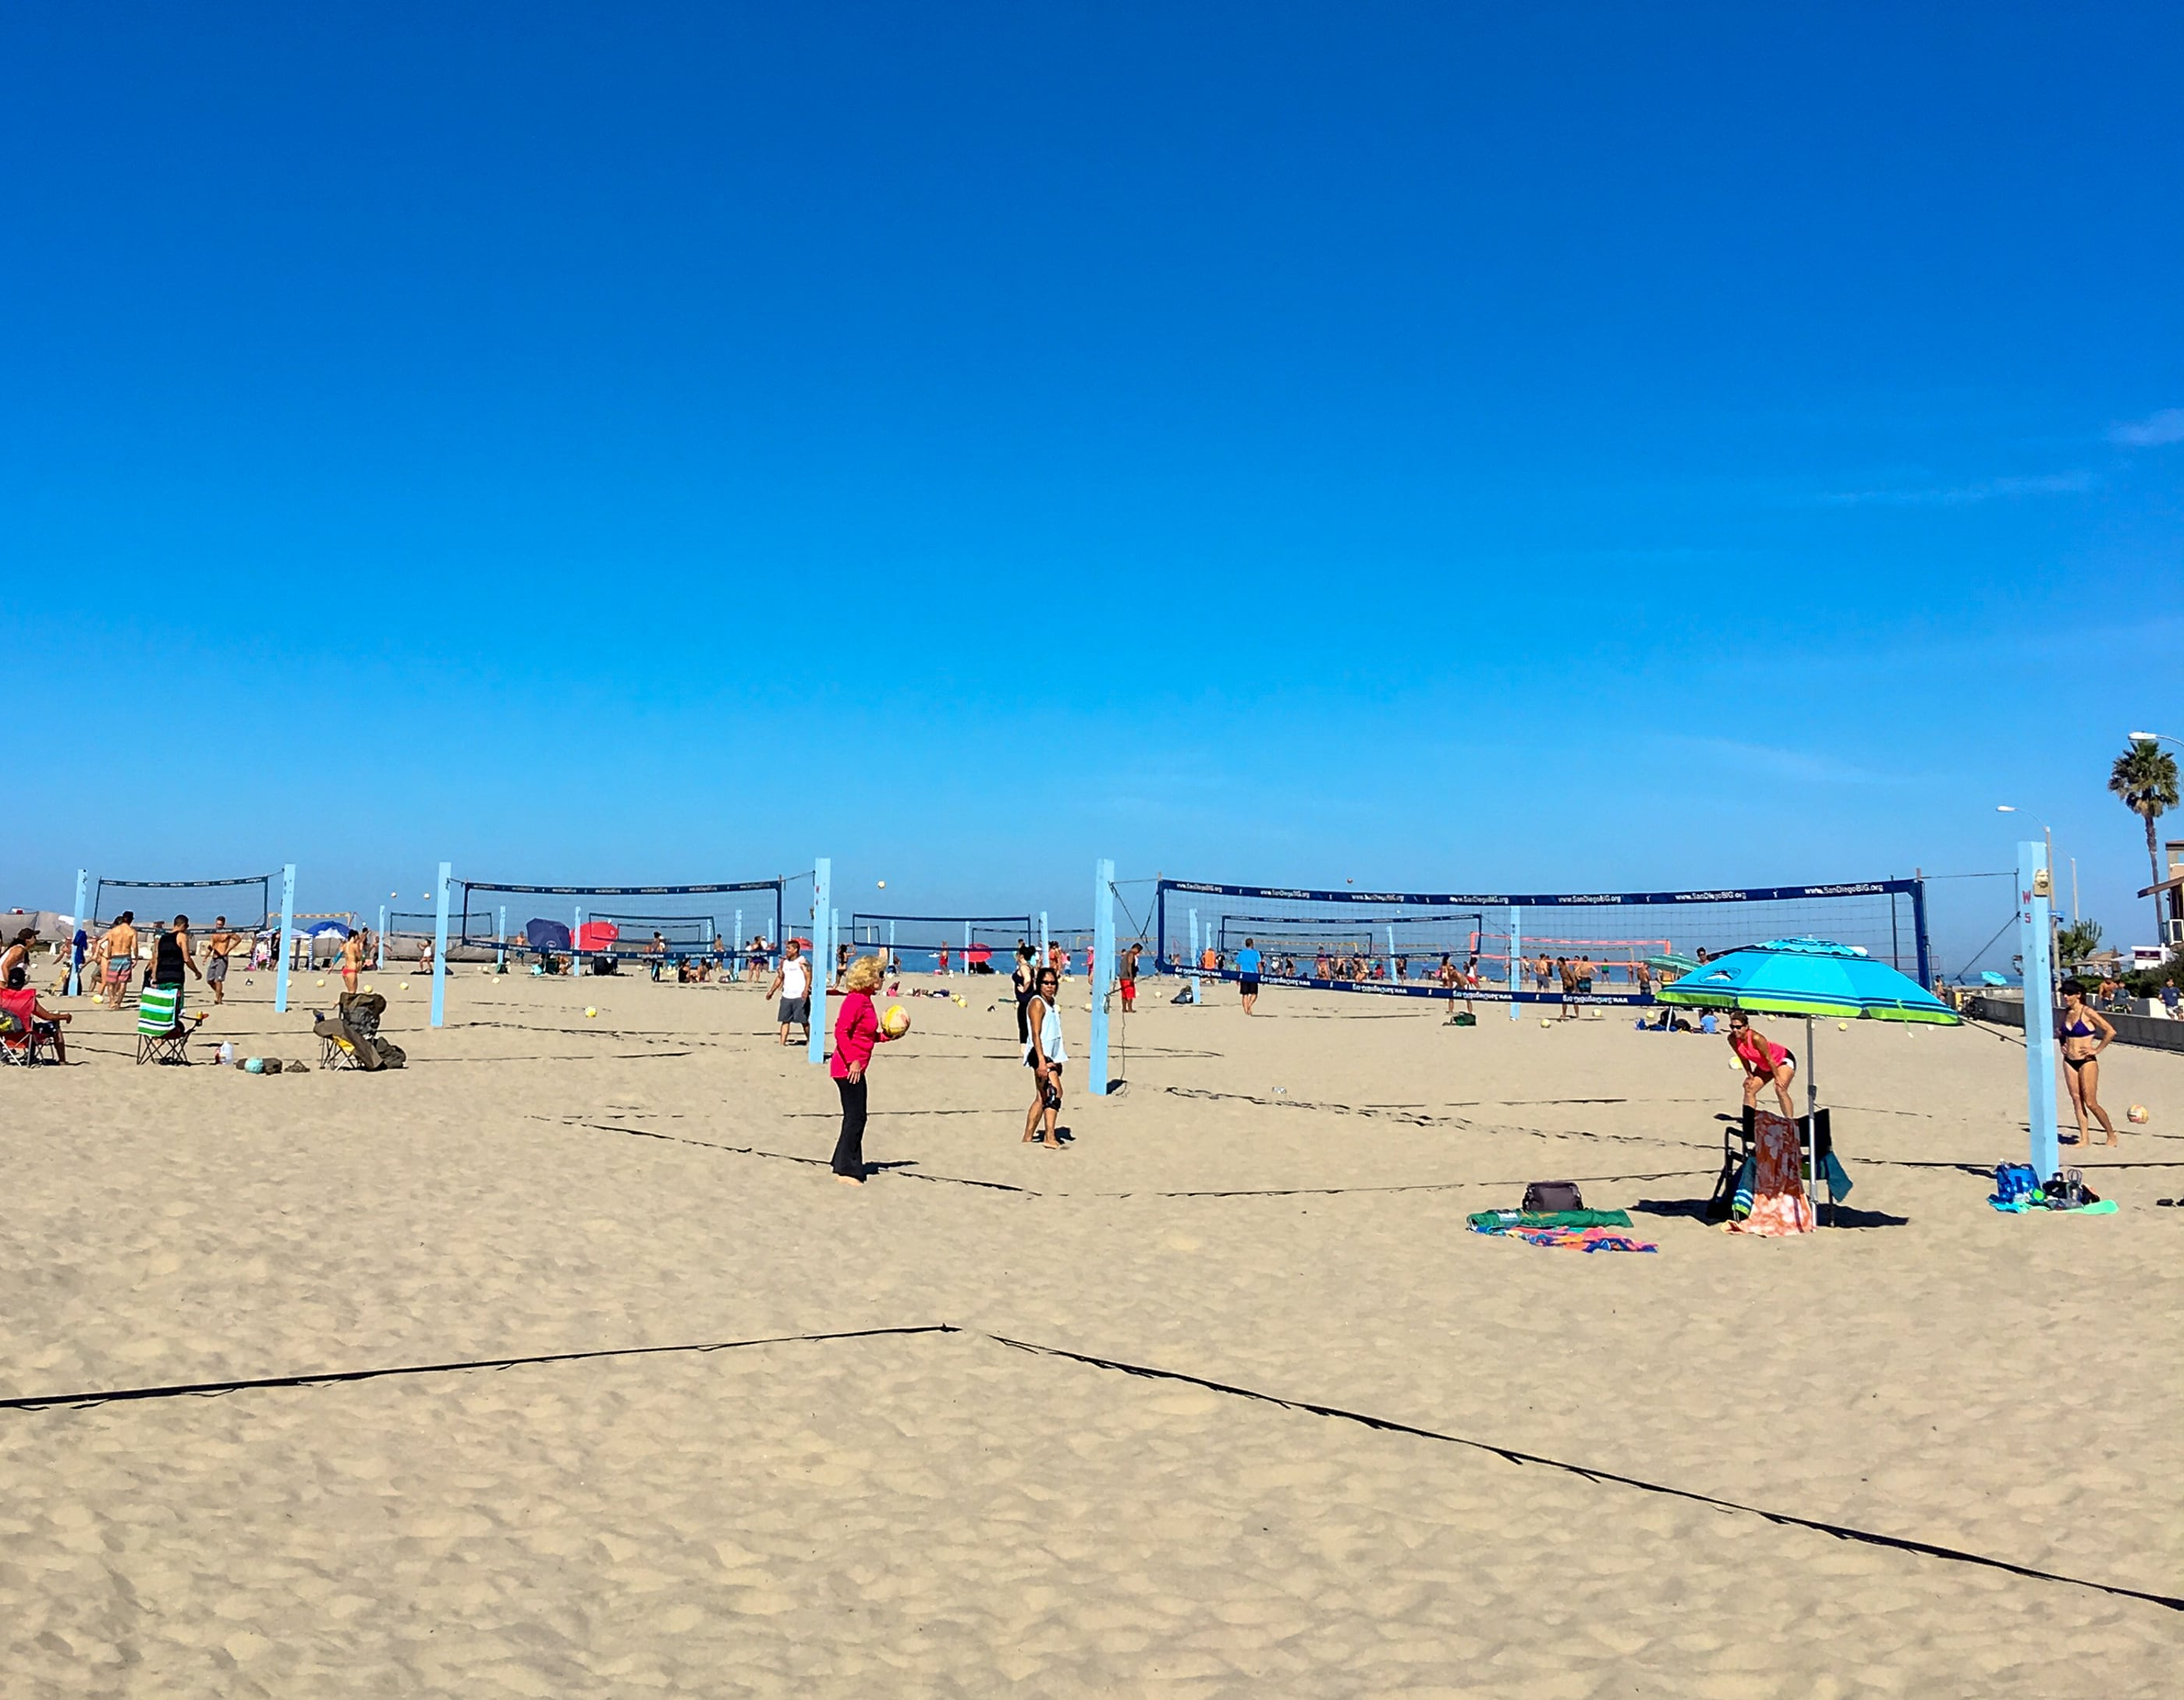 Volleyball courts at South Mission Beach in San Diego